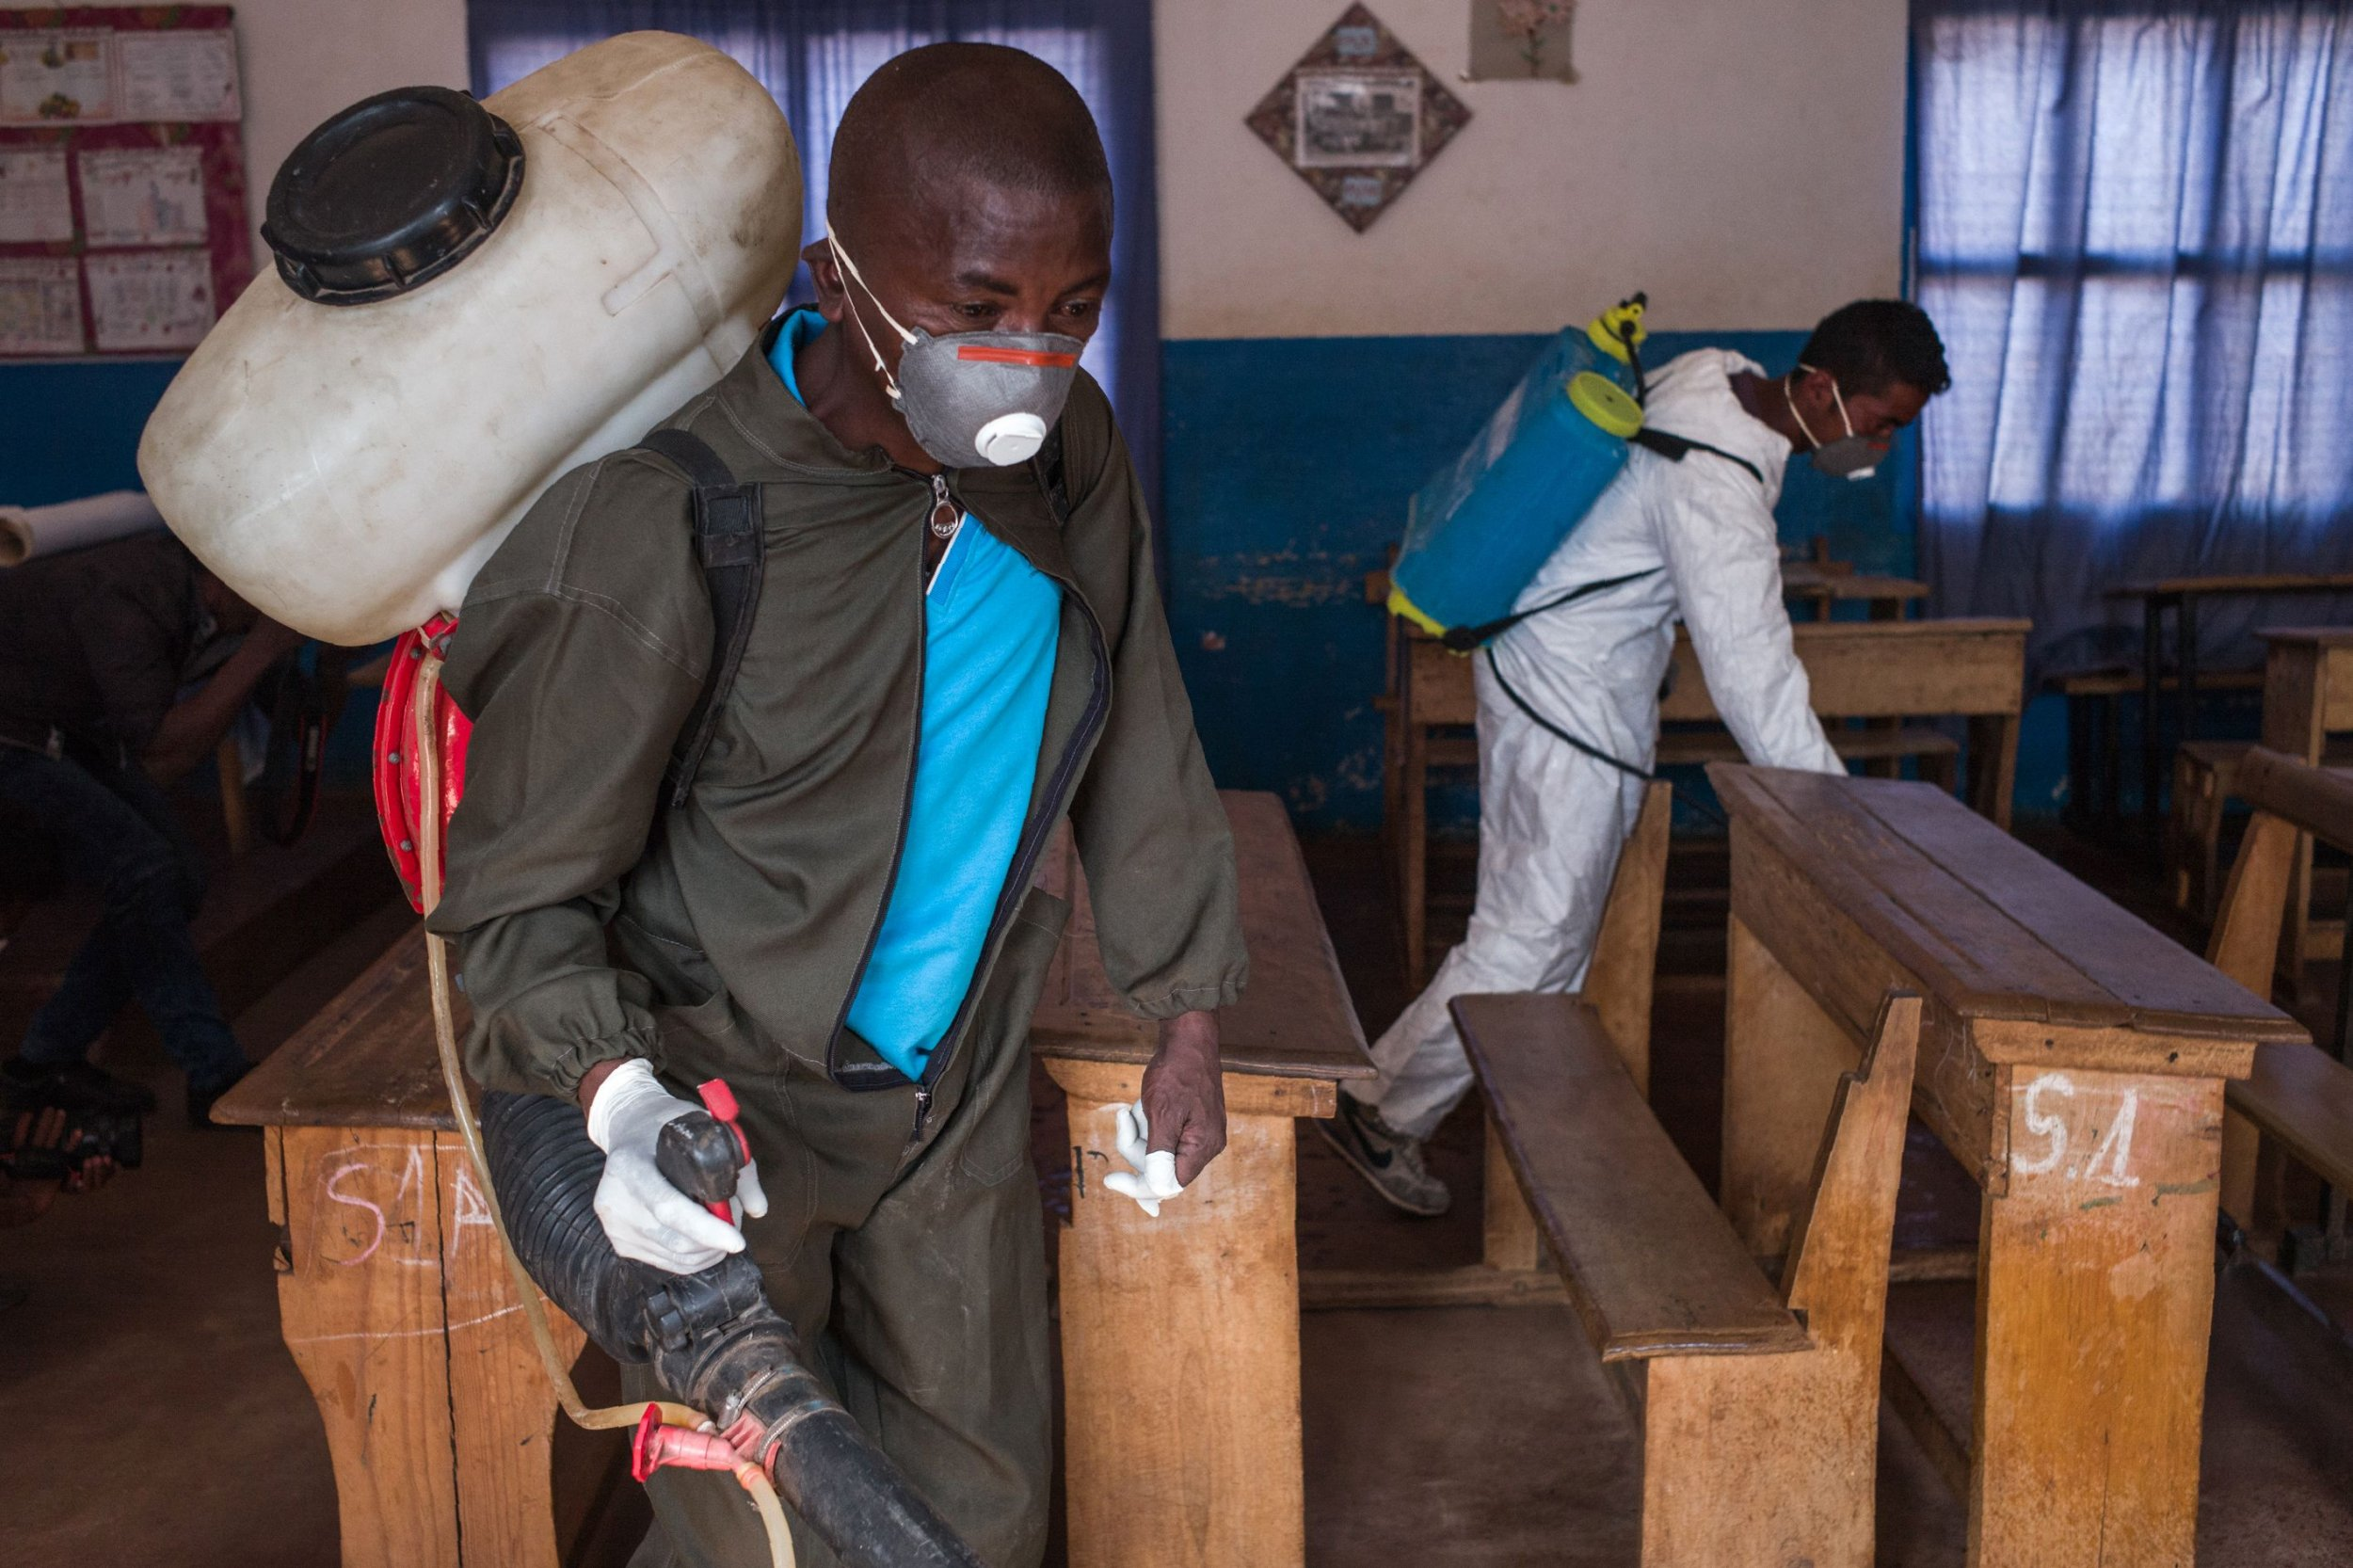 A deadly plague outbreak like Madagascar's could also happen in the U.S., infectious disease expert warns